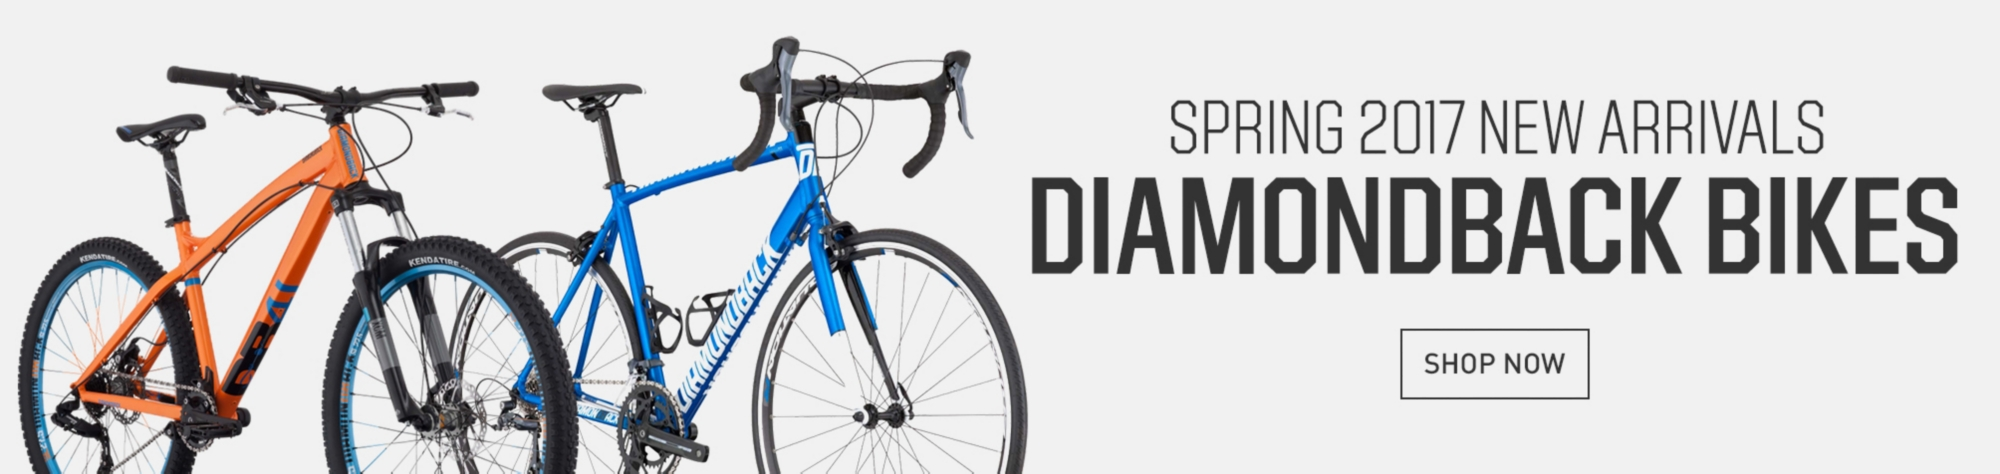 Shop Diamondback Bikes